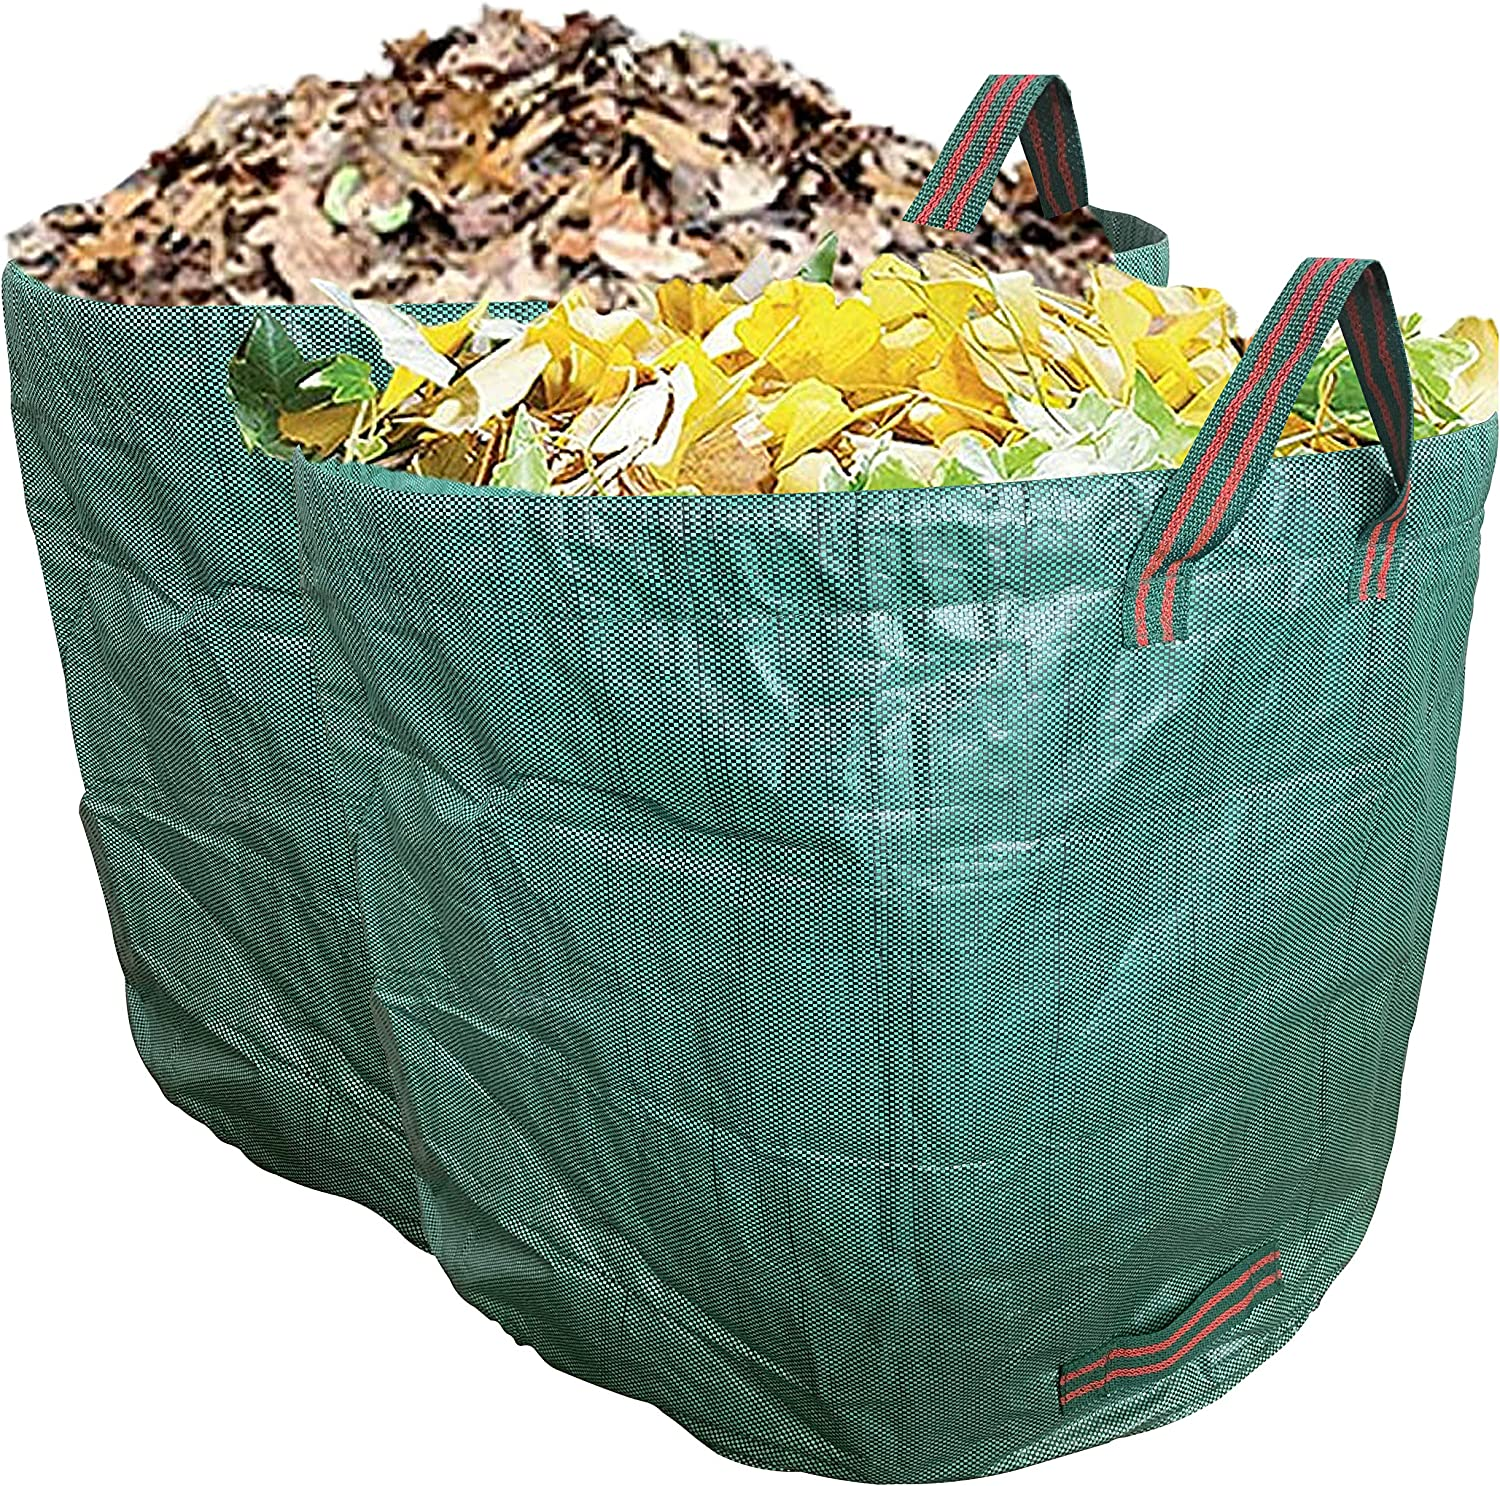 Ugold 2-Pack Garden Bag, Reusable Yard Waste Bag, Leaf Bag, Work for Garden, Lawn and Patio, Clean Up Leaves and Waste (2-Pack 80 Gallons)